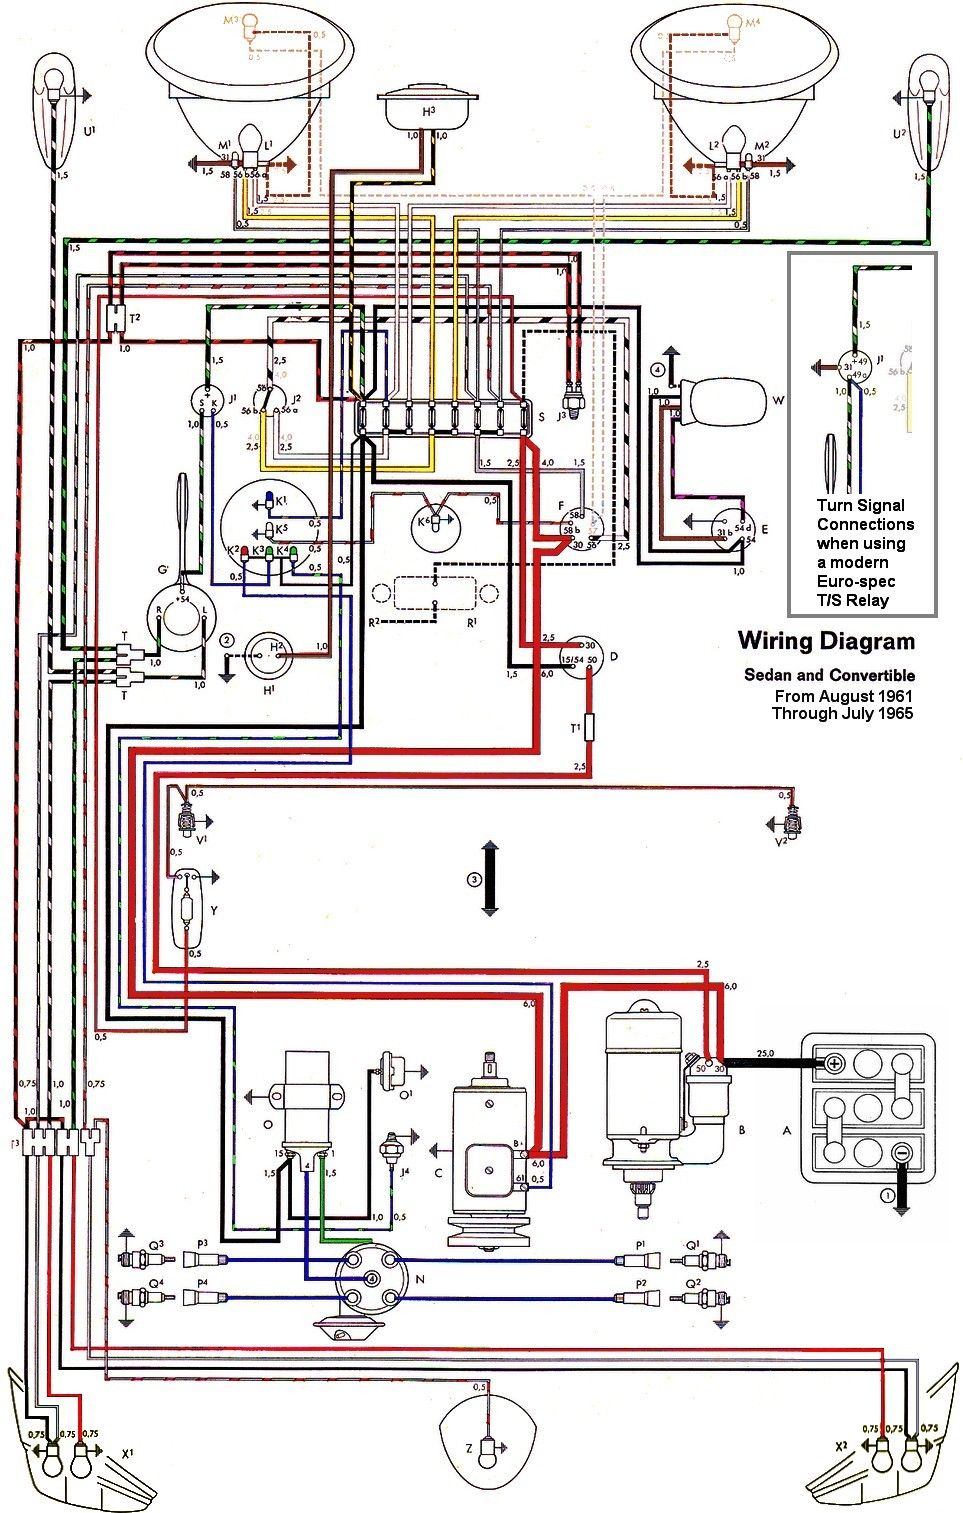 Wiring Diagram Vw Beetle Sedan And Convertible 1961 1965 1979 Corvette Door Latch Parts